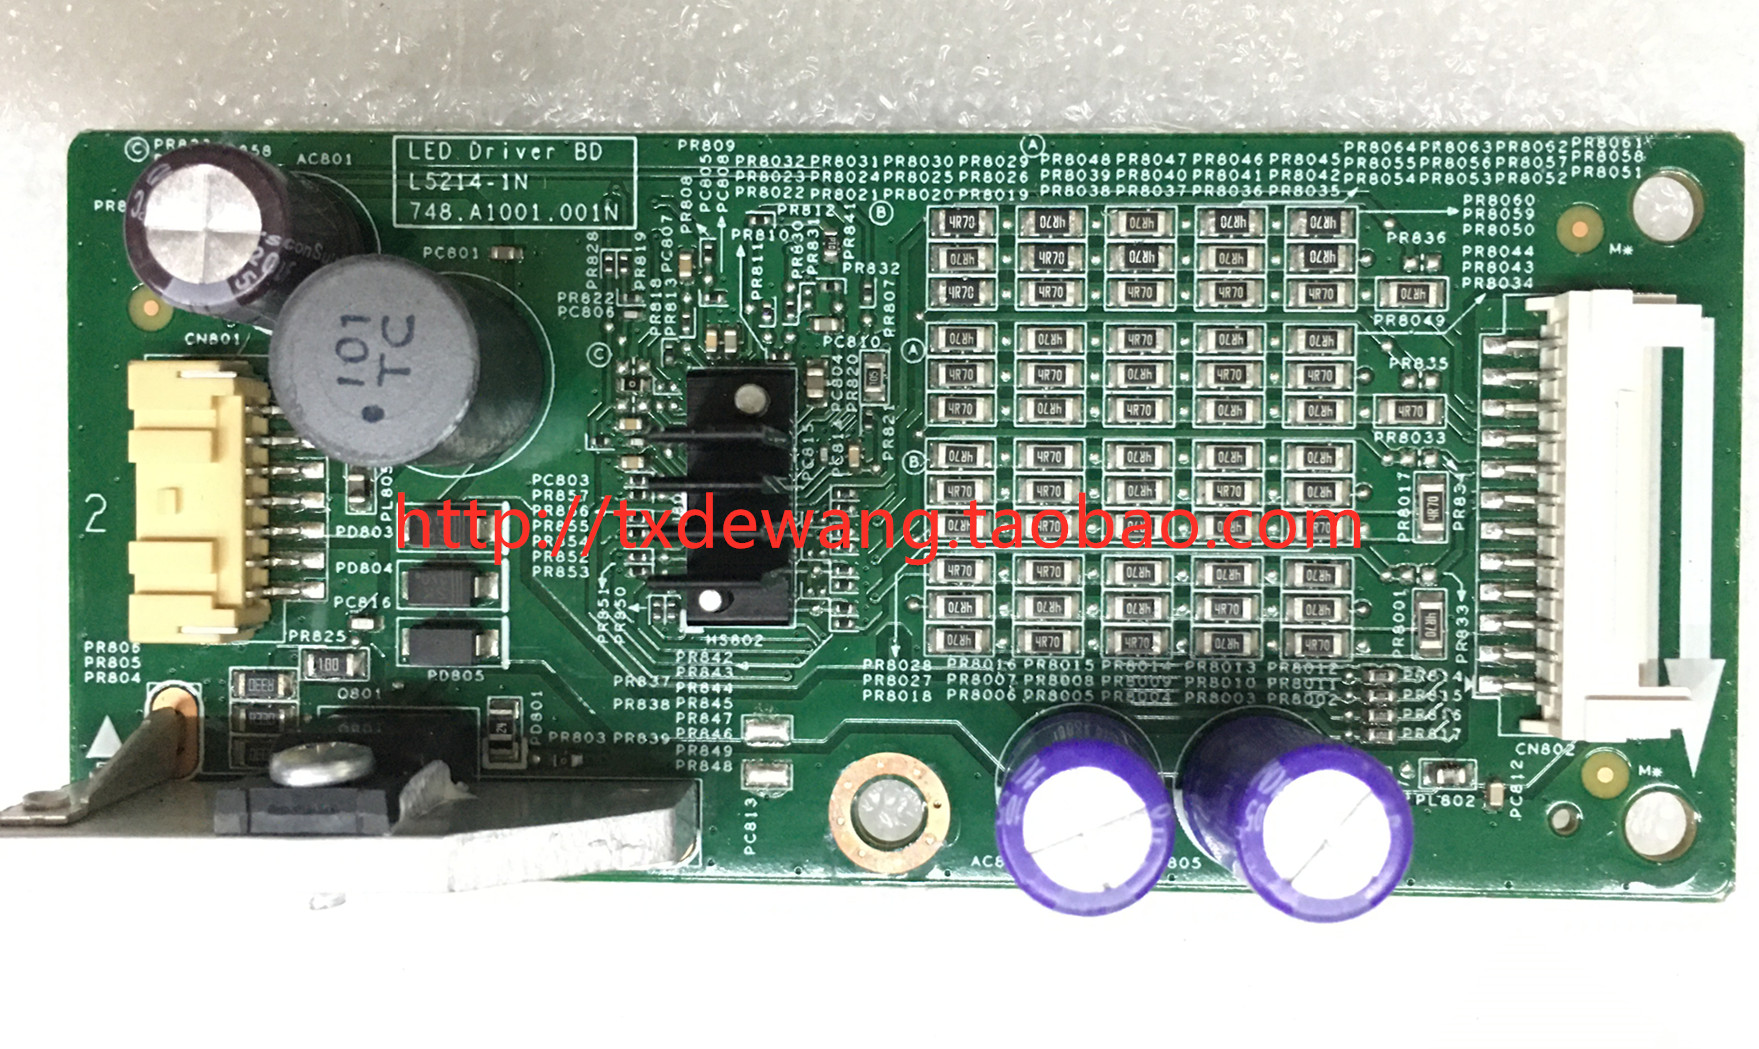 DELL UP2716D backlight boost board 748.A1001.001N LM270WQ6 SSA1